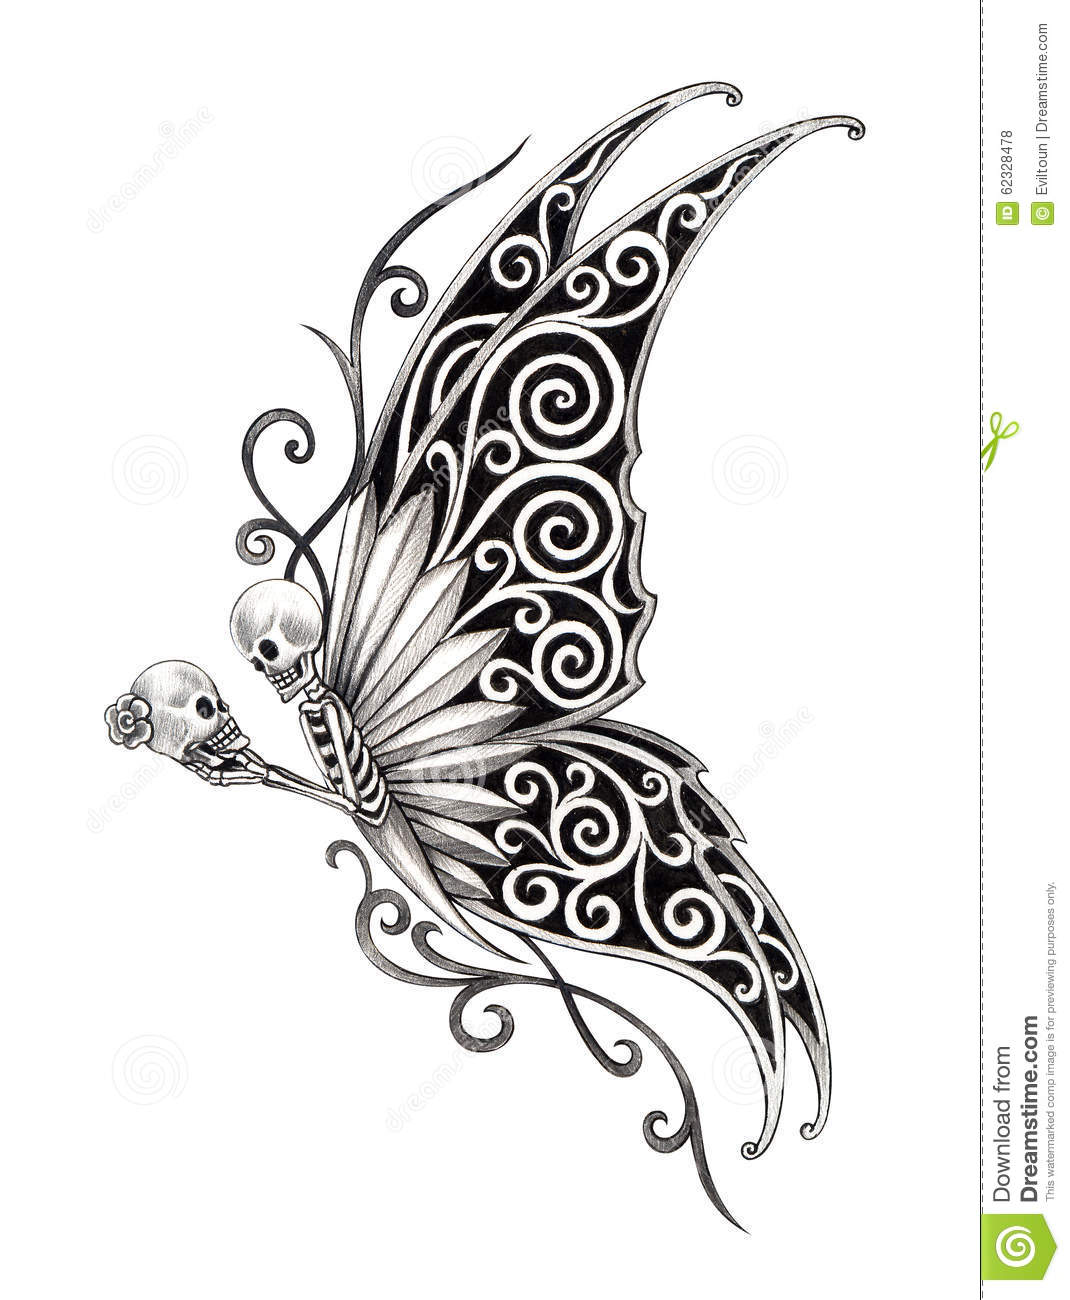 Art skull fairy tattoo stock illustration illustration for Drawing tattoos on paper